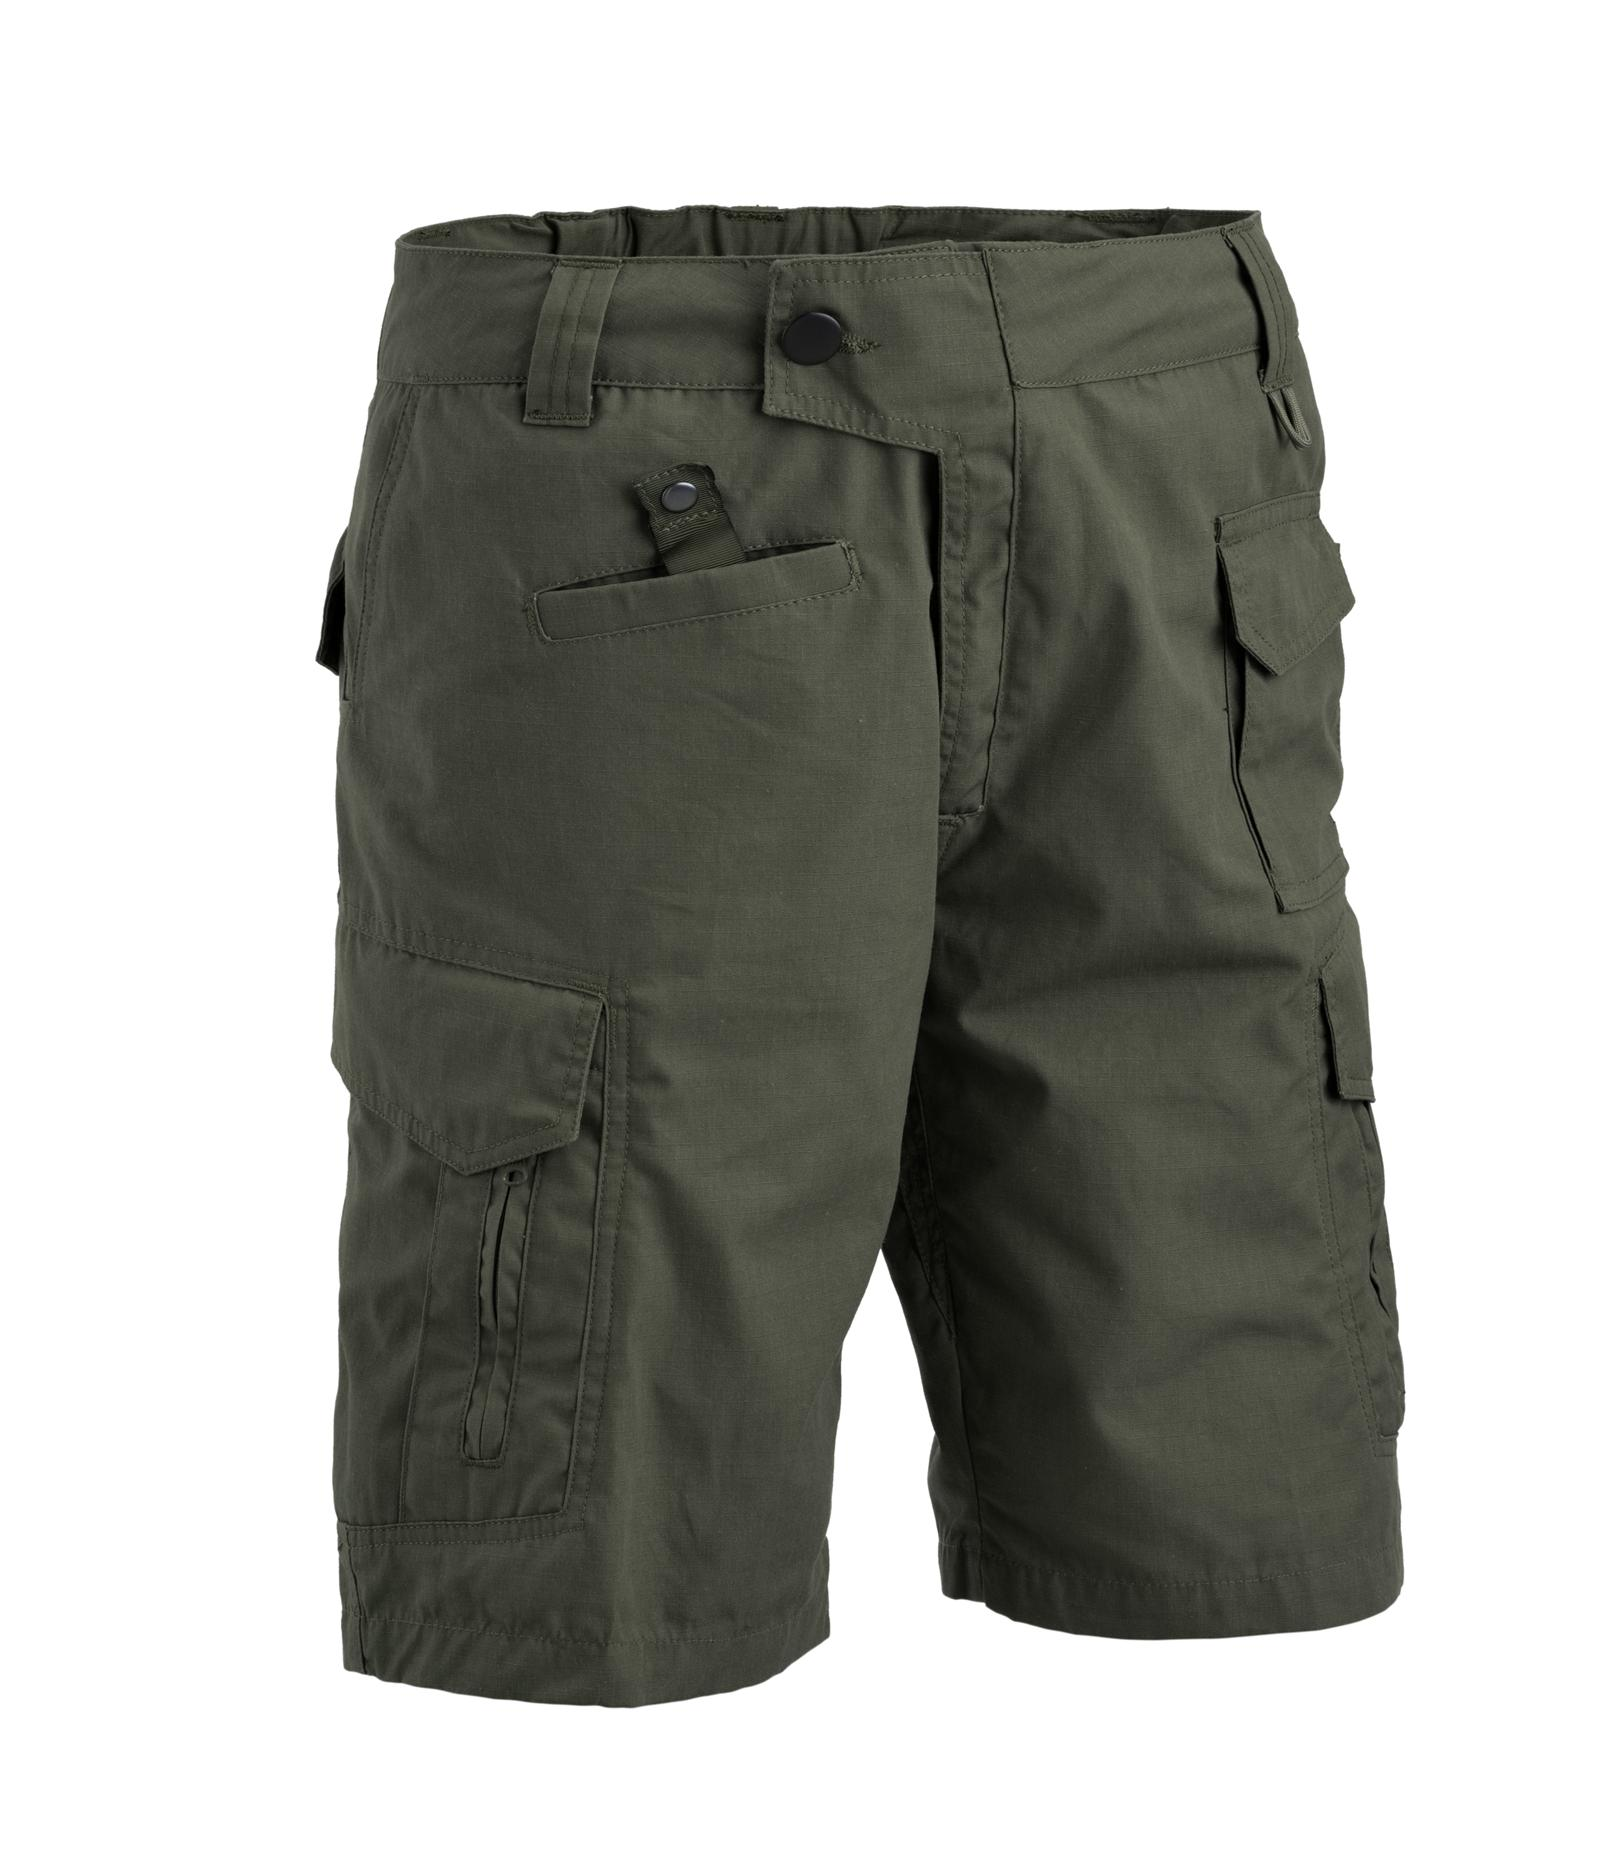 Defcon 5 Shorts Coyote Tan D5-3438 CT Advanced Tactical Short Pant Rip Stop Tactical Short Trousers